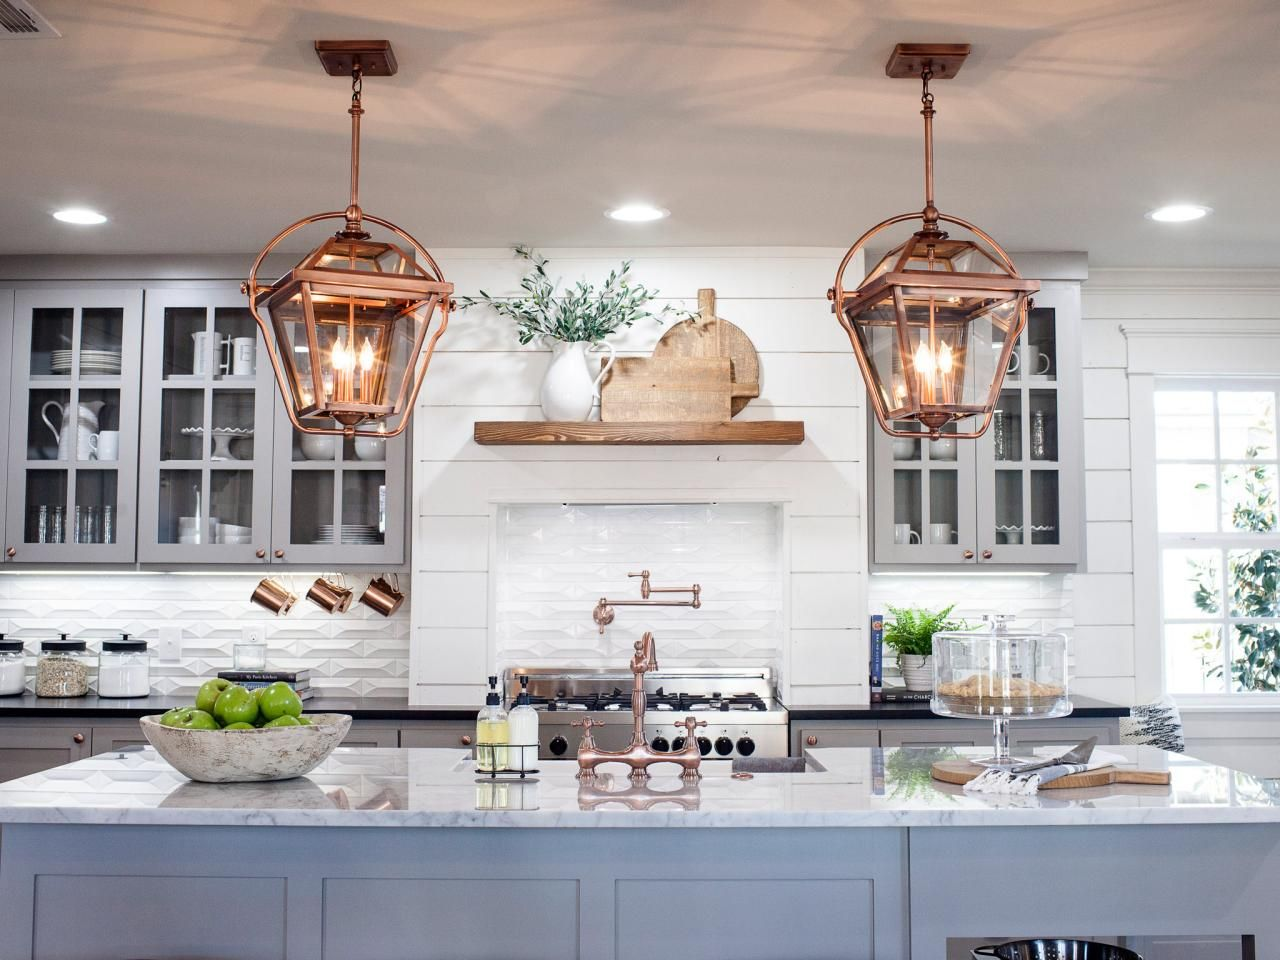 Fixer upper kitchen island pictures - As Season 3 Of Hgtv S Fixer Upper Draws To Its Finale Chip And Joanna Gaines